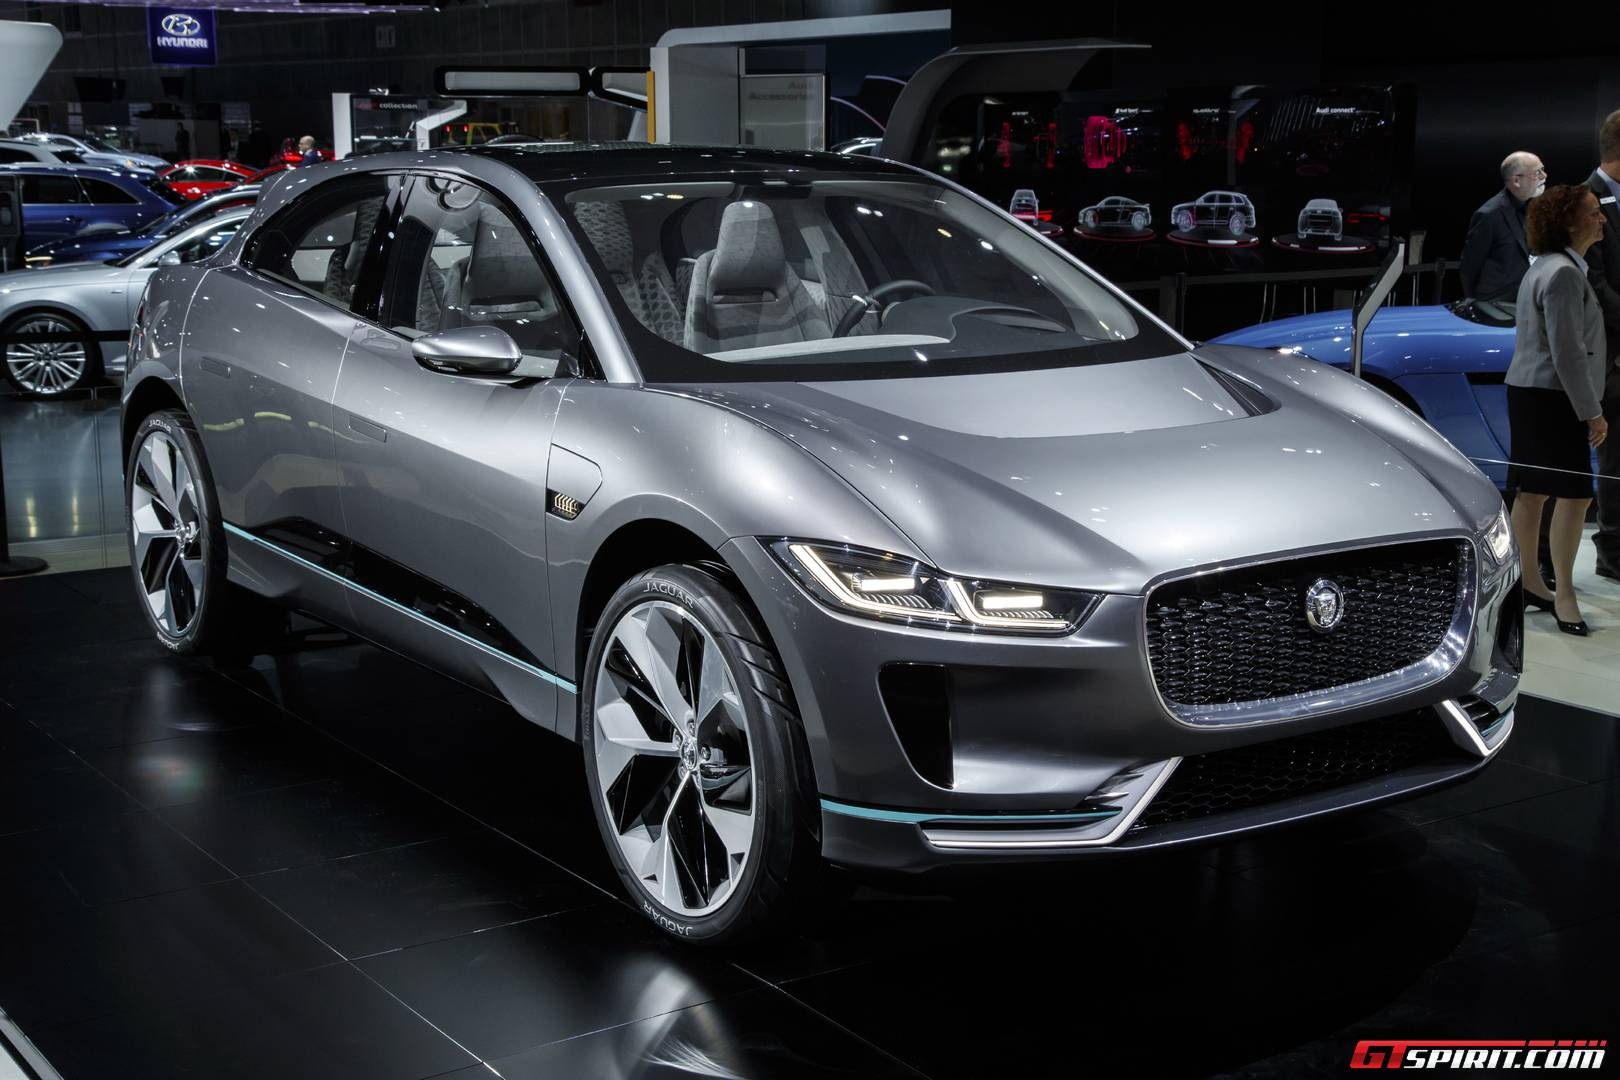 Lithium Ion Car Battery >> LA Auto Show 2016: Jaguar I-PACE Electric SUV - GTspirit